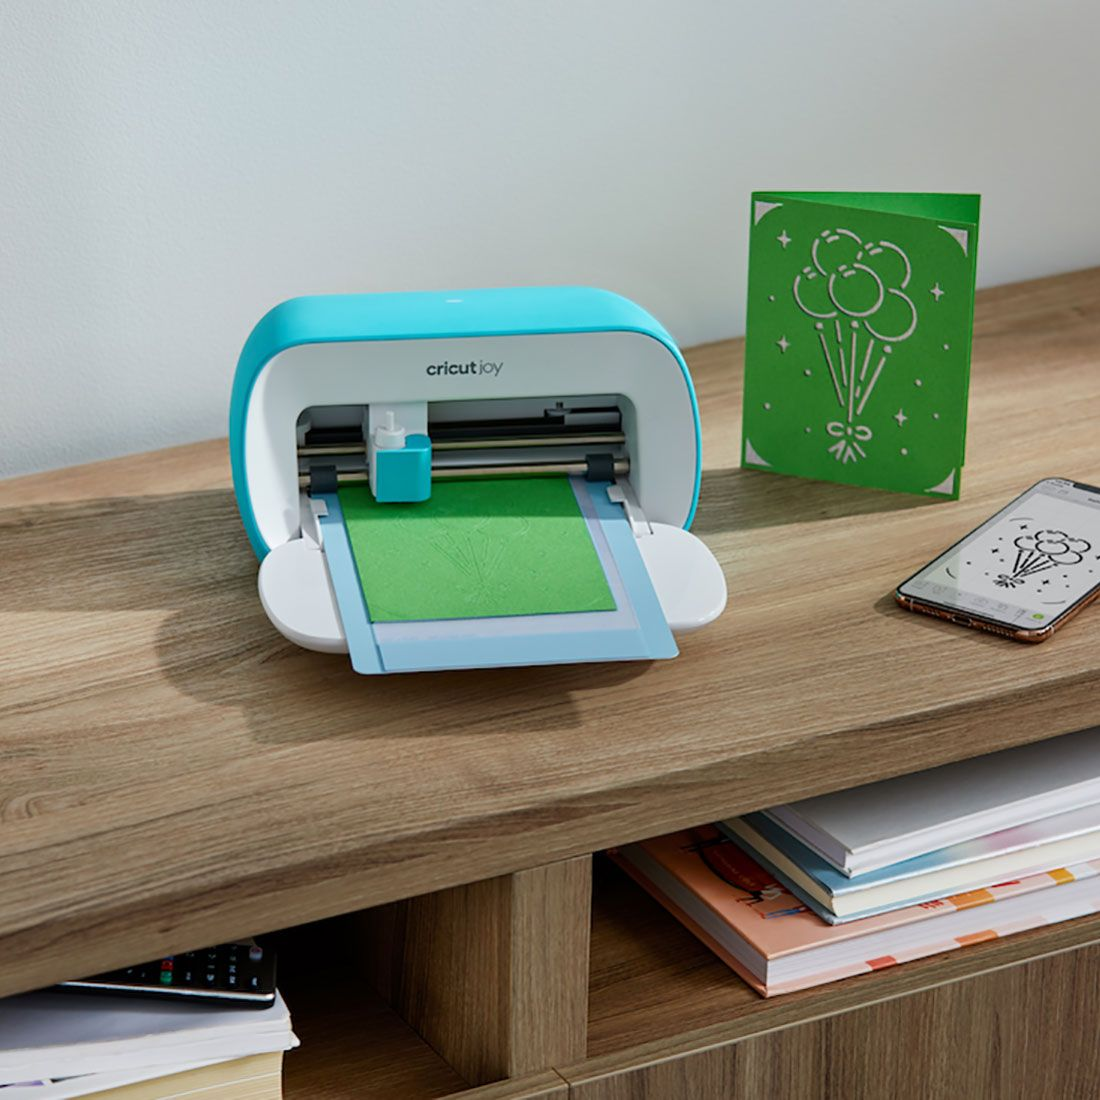 Most Compact and Portable Cricut Machine: Cricut Joy